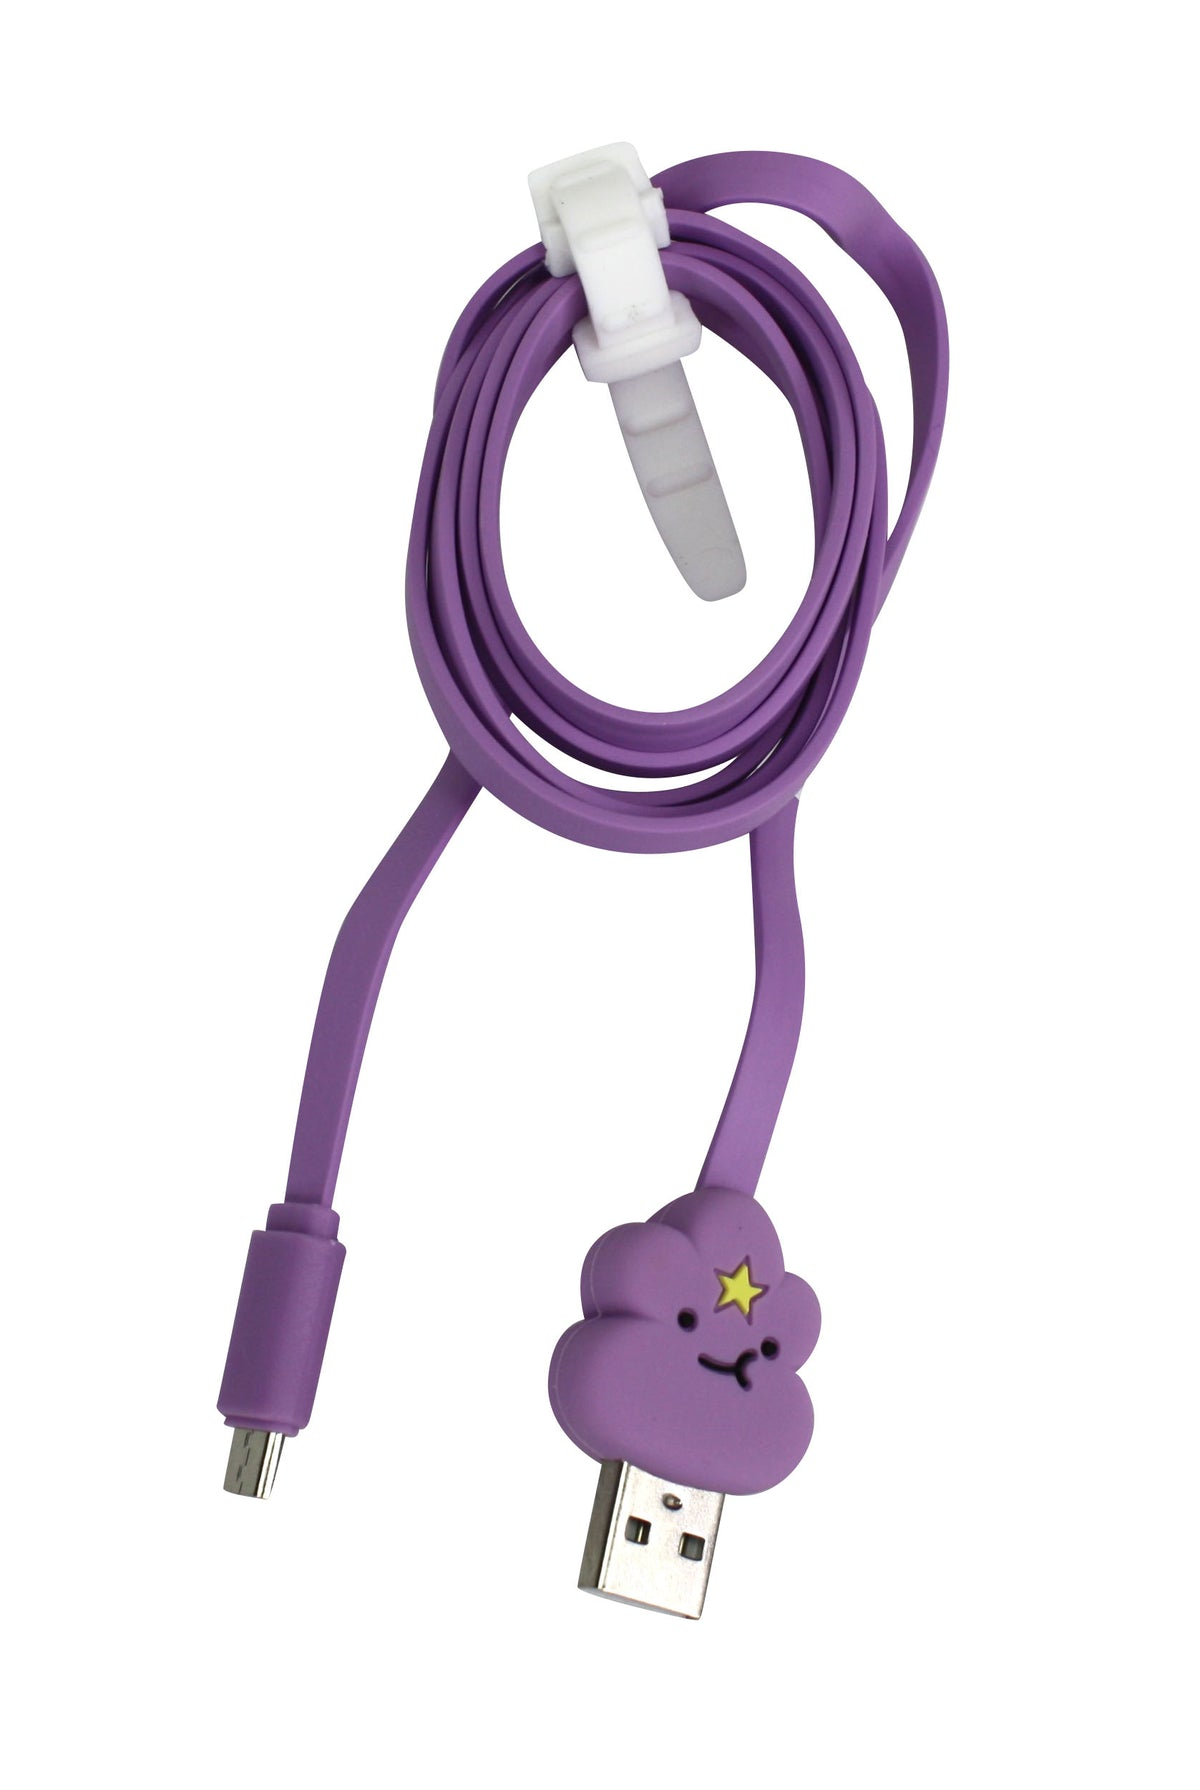 Adventure Time Lumpy Space Princess Micro Data Cable for Android, USB Charging Cable - farangshop-co